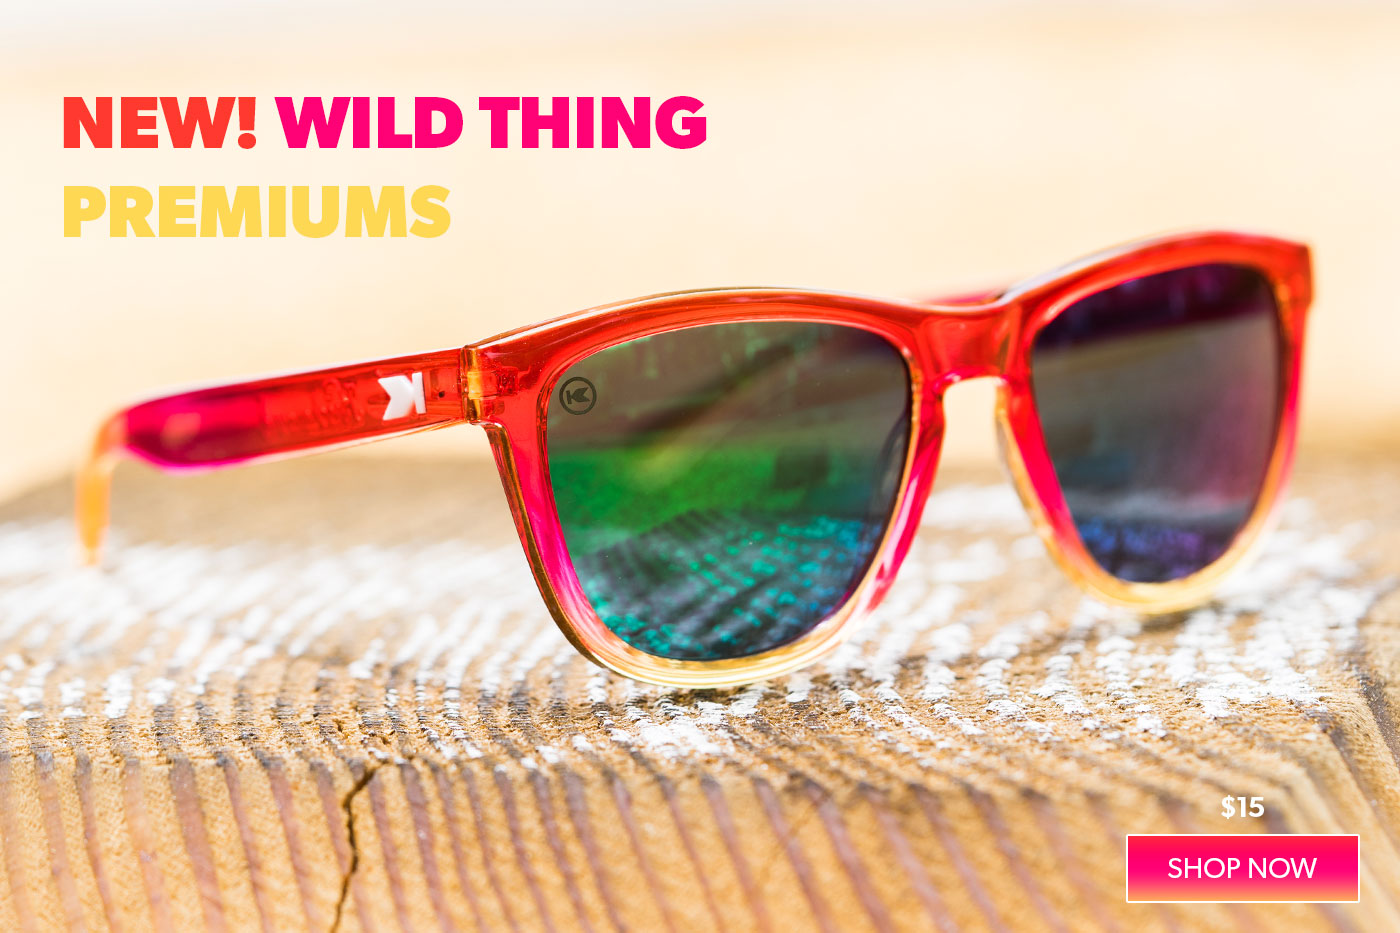 Wild Thing Premiums